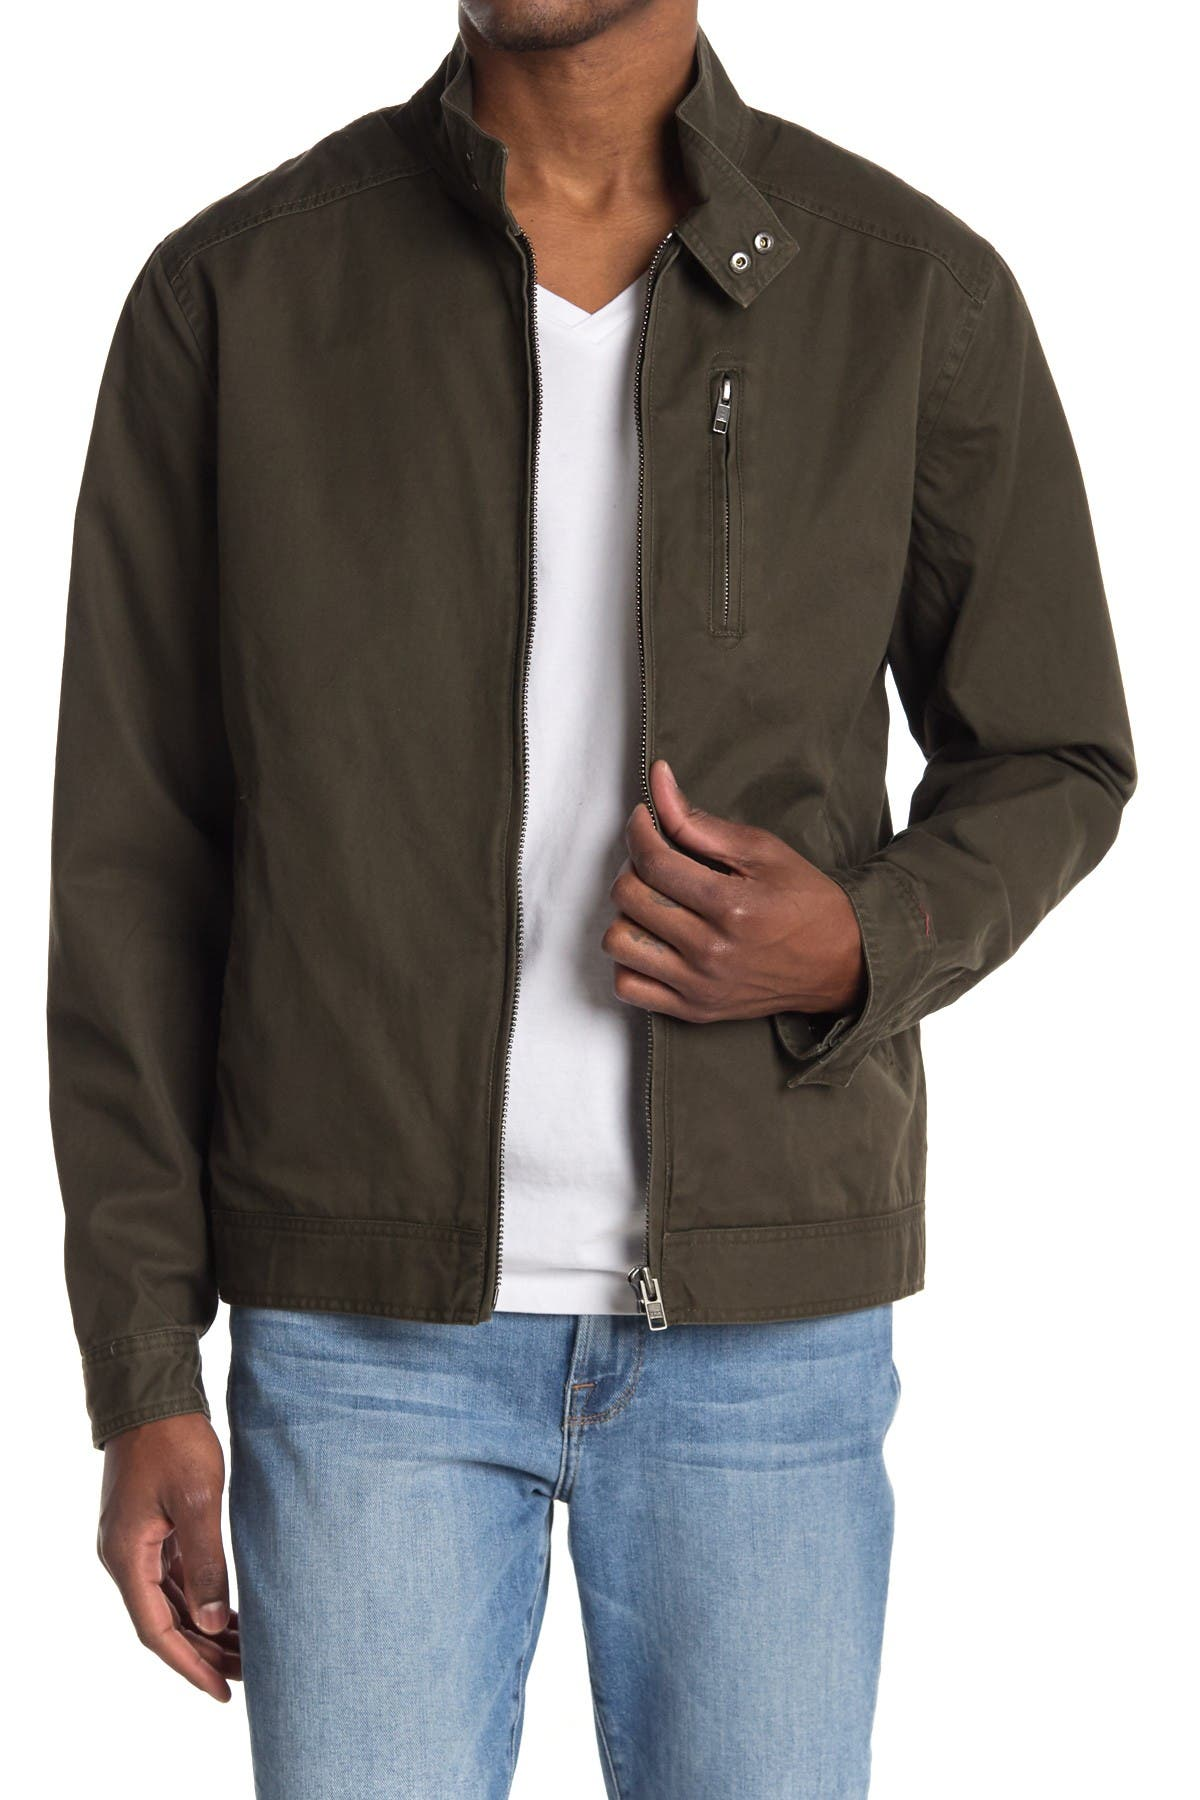 RODD AND GUNN Wingate Zip Jacket at Nordstrom Rack